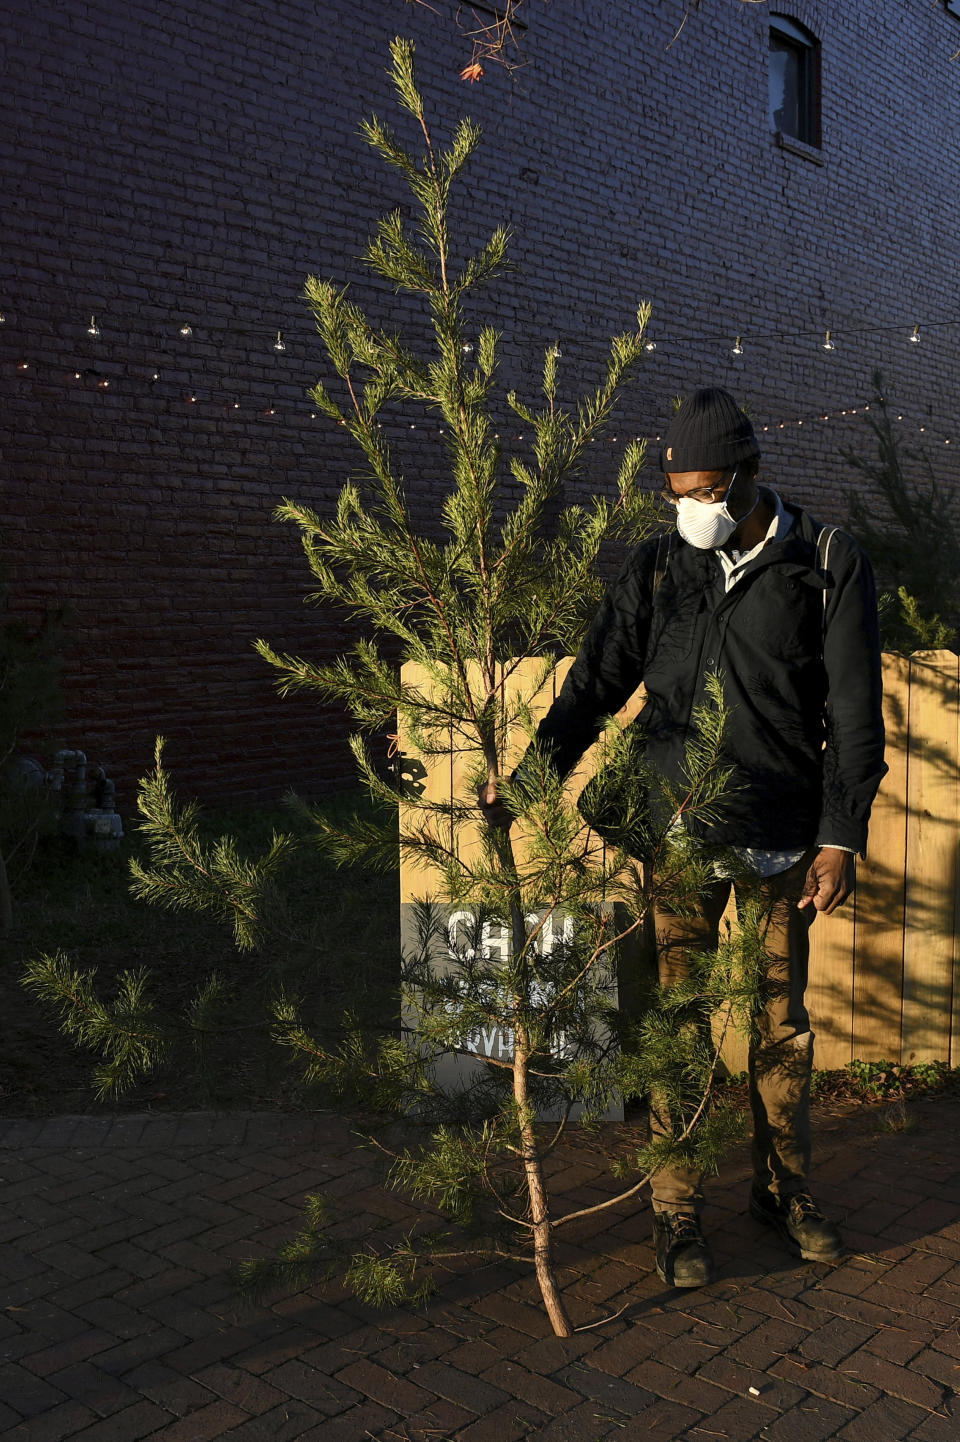 Brian Palmer, of Richmond, holds his recently purchased tree outside of Frank Pichel's tree lot, Sunday, Dec. 6, 2020, in Richmond, Va. A Virginia man has found a way to use Charlie Brown-style Christmas trees to benefit a middle school that provides scholarships for students from an impoverished area. (AP Photo/Will Newton)